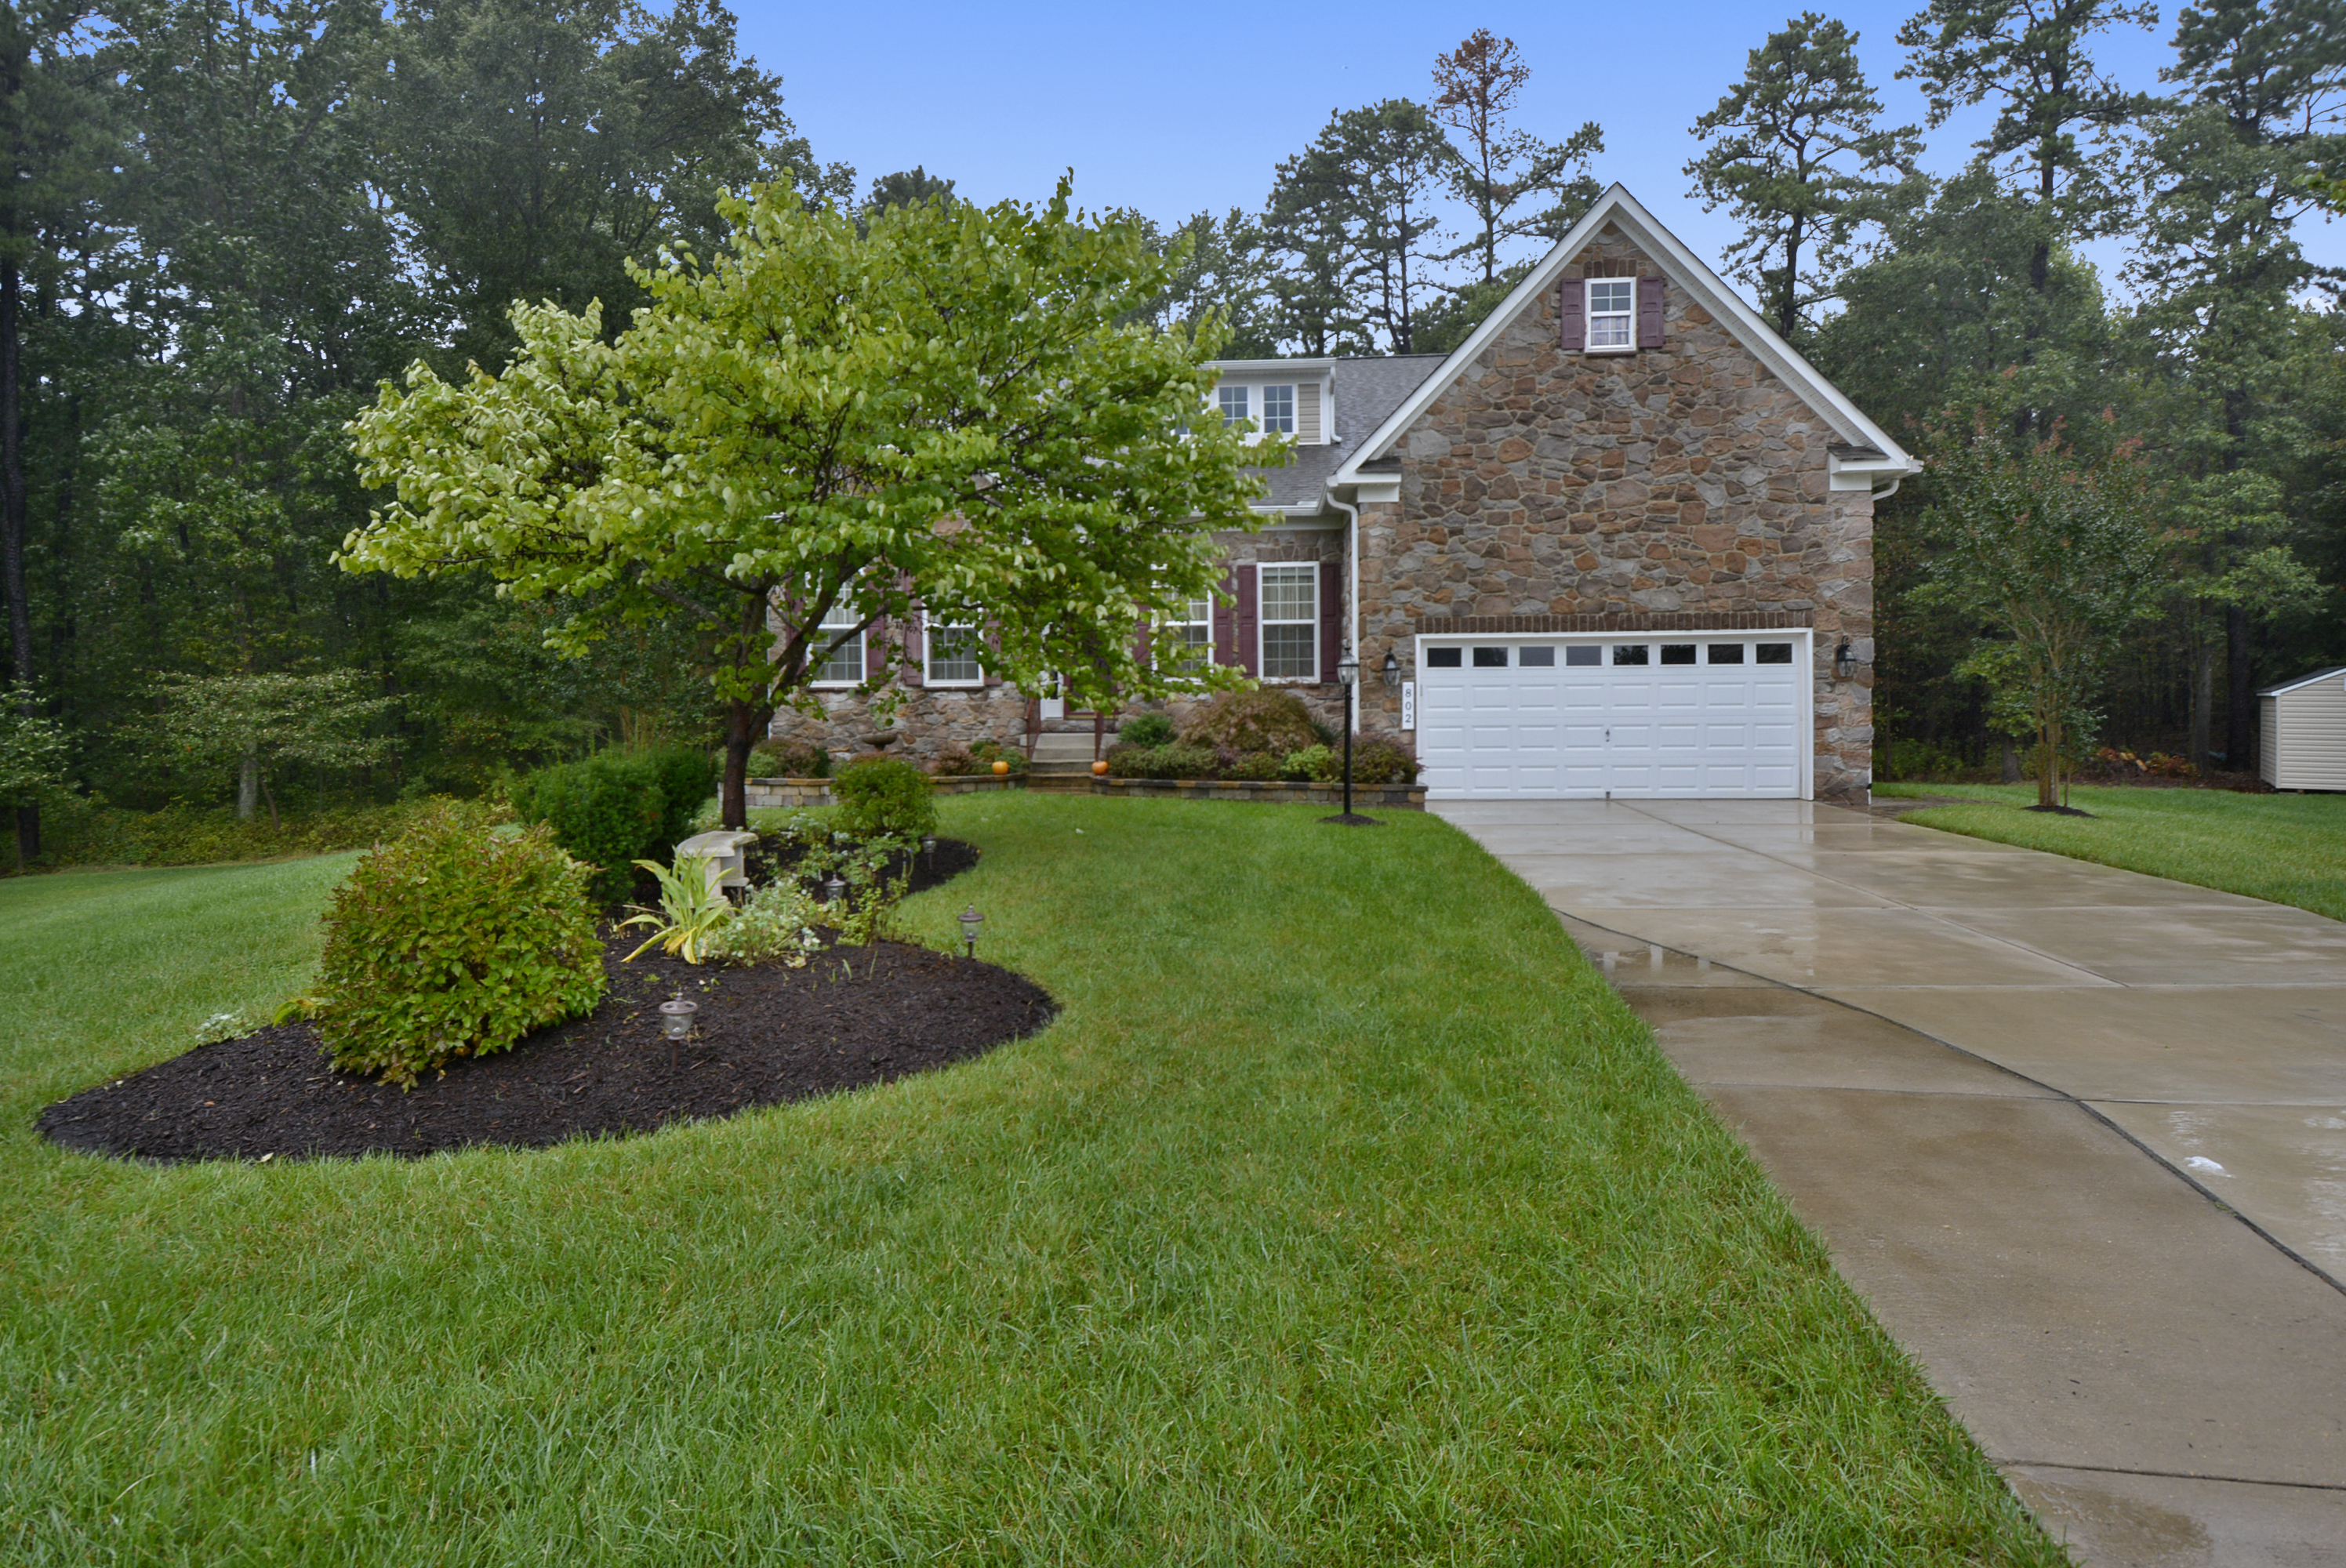 Glen burnie home for sale in sloop cove landing